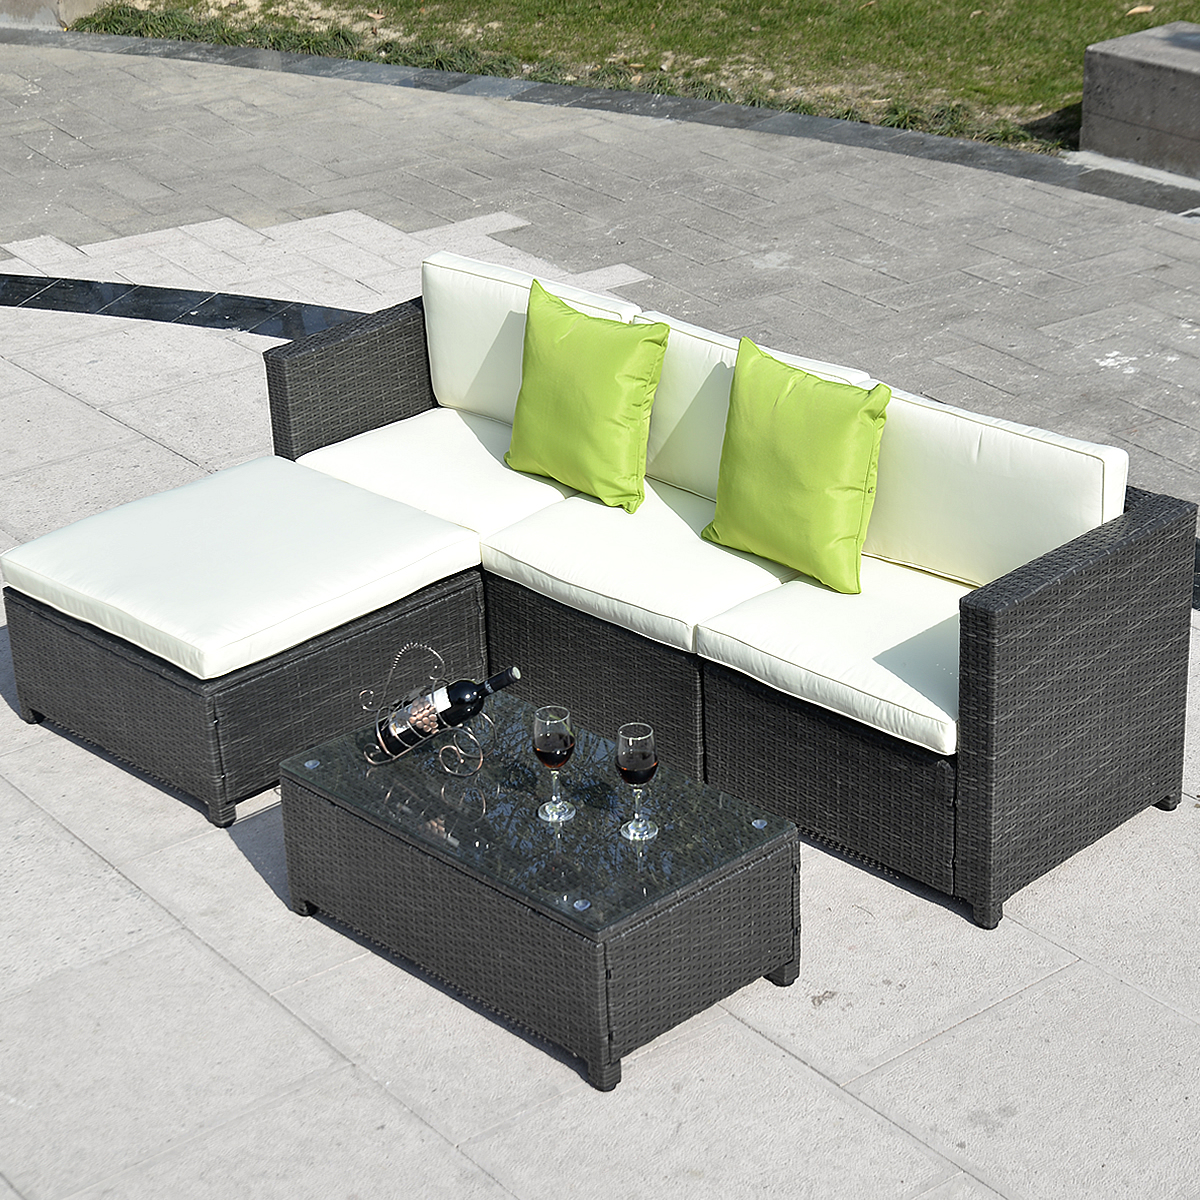 Costway Outdoor Patio 5pc Furniture Sectional Pe Wicker Rattan Sofa Set  Deck Couch Black (Black) - Walmart.com - Costway Outdoor Patio 5pc Furniture Sectional Pe Wicker Rattan Sofa